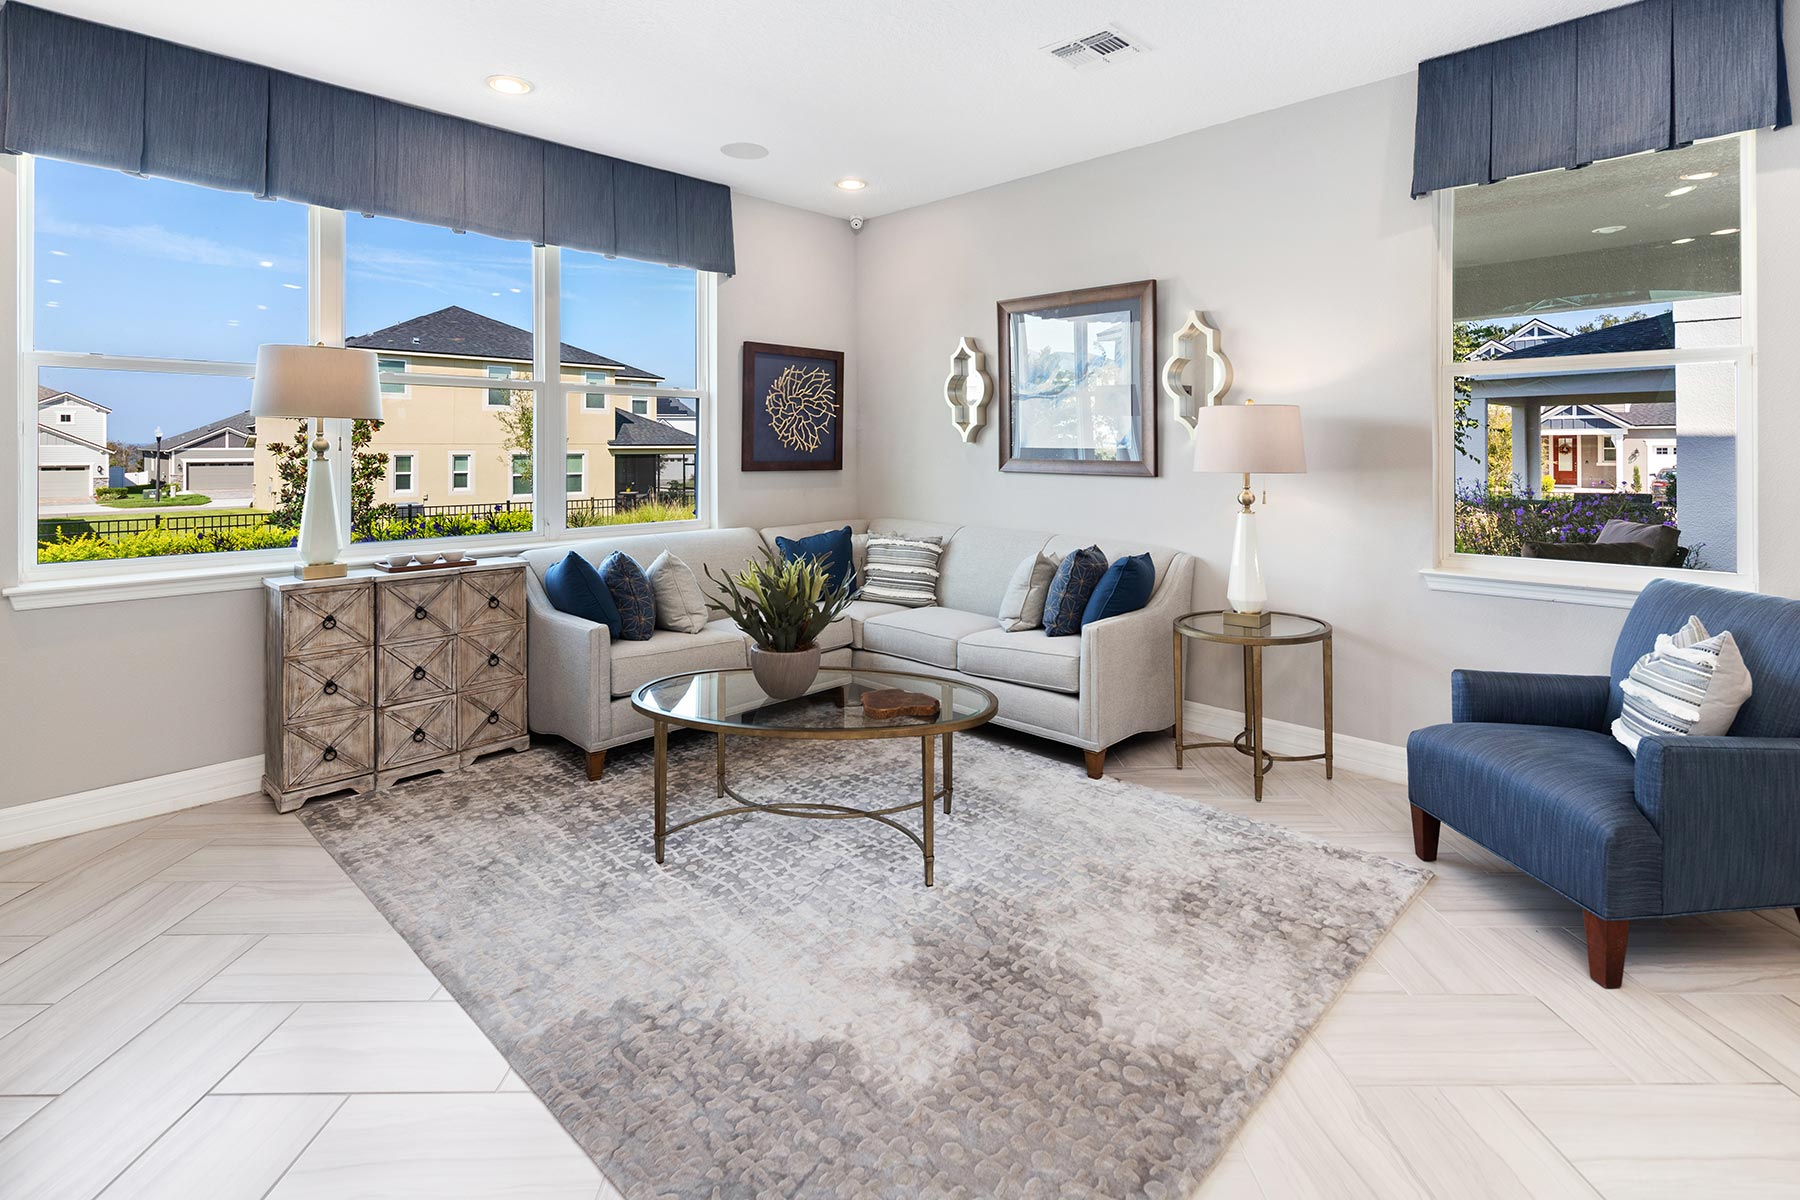 Kensington Plan Greatroom at Preserve at Crown Point in Ocoee Florida by Mattamy Homes